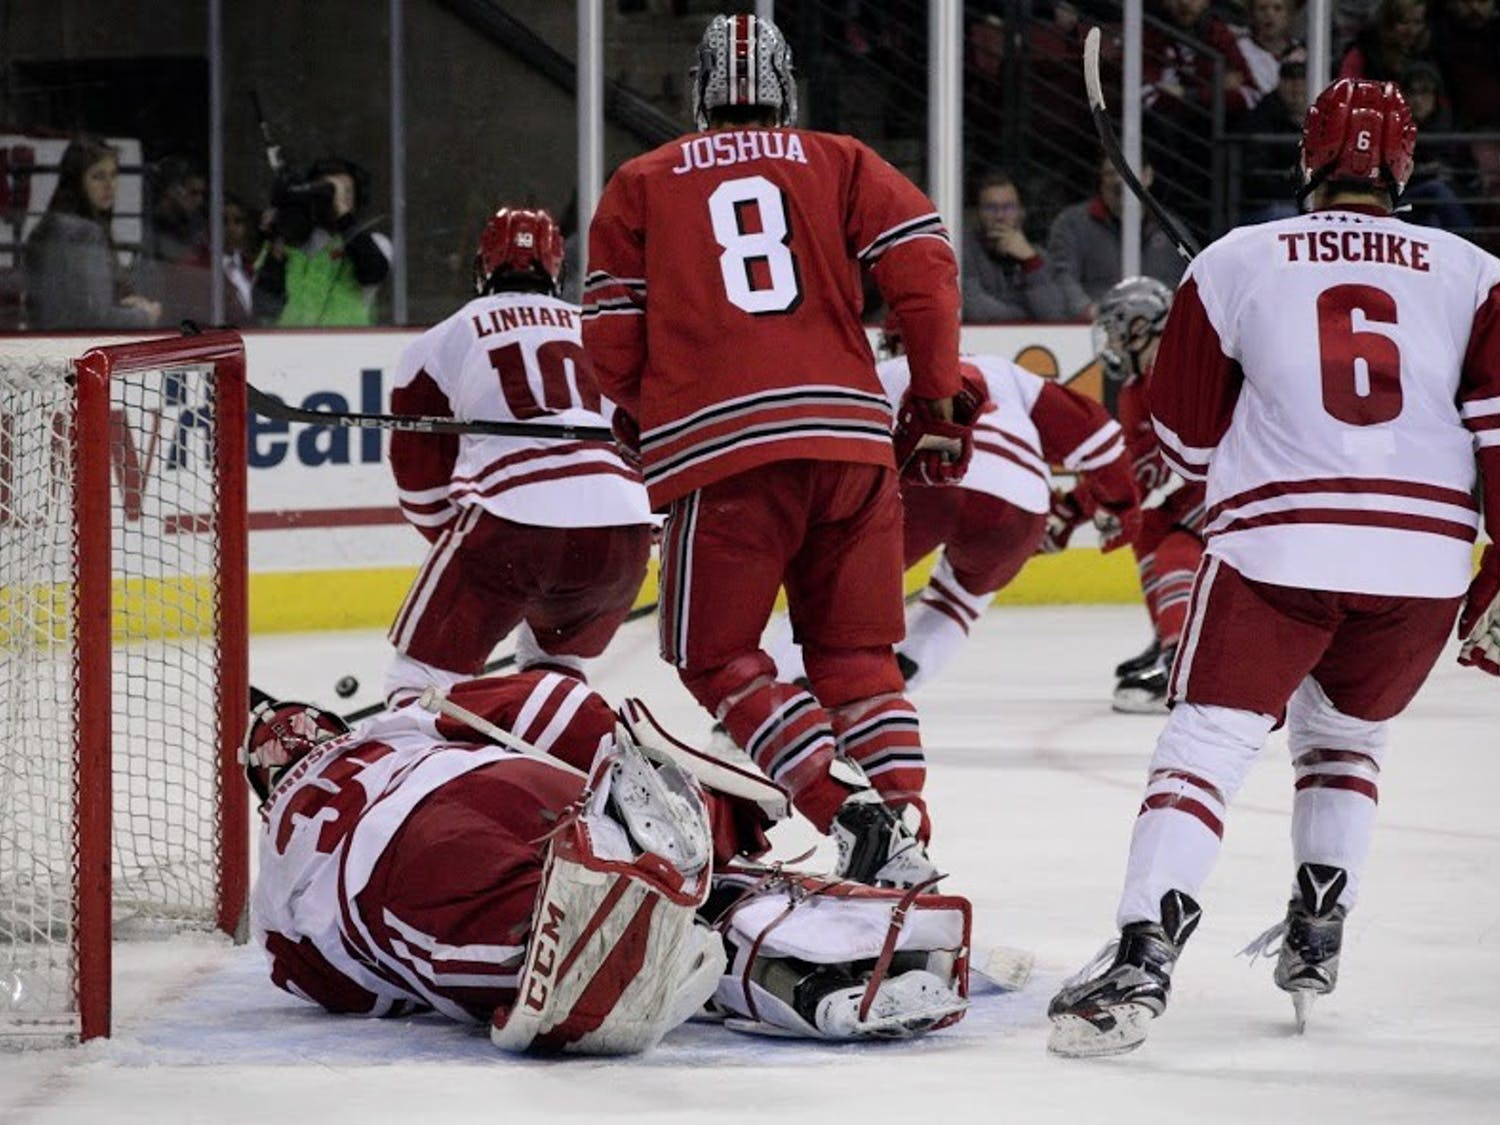 Wisconsin went 3-2 against Ohio State last season, including a win in the Big Ten Conference Tournament semifinals.